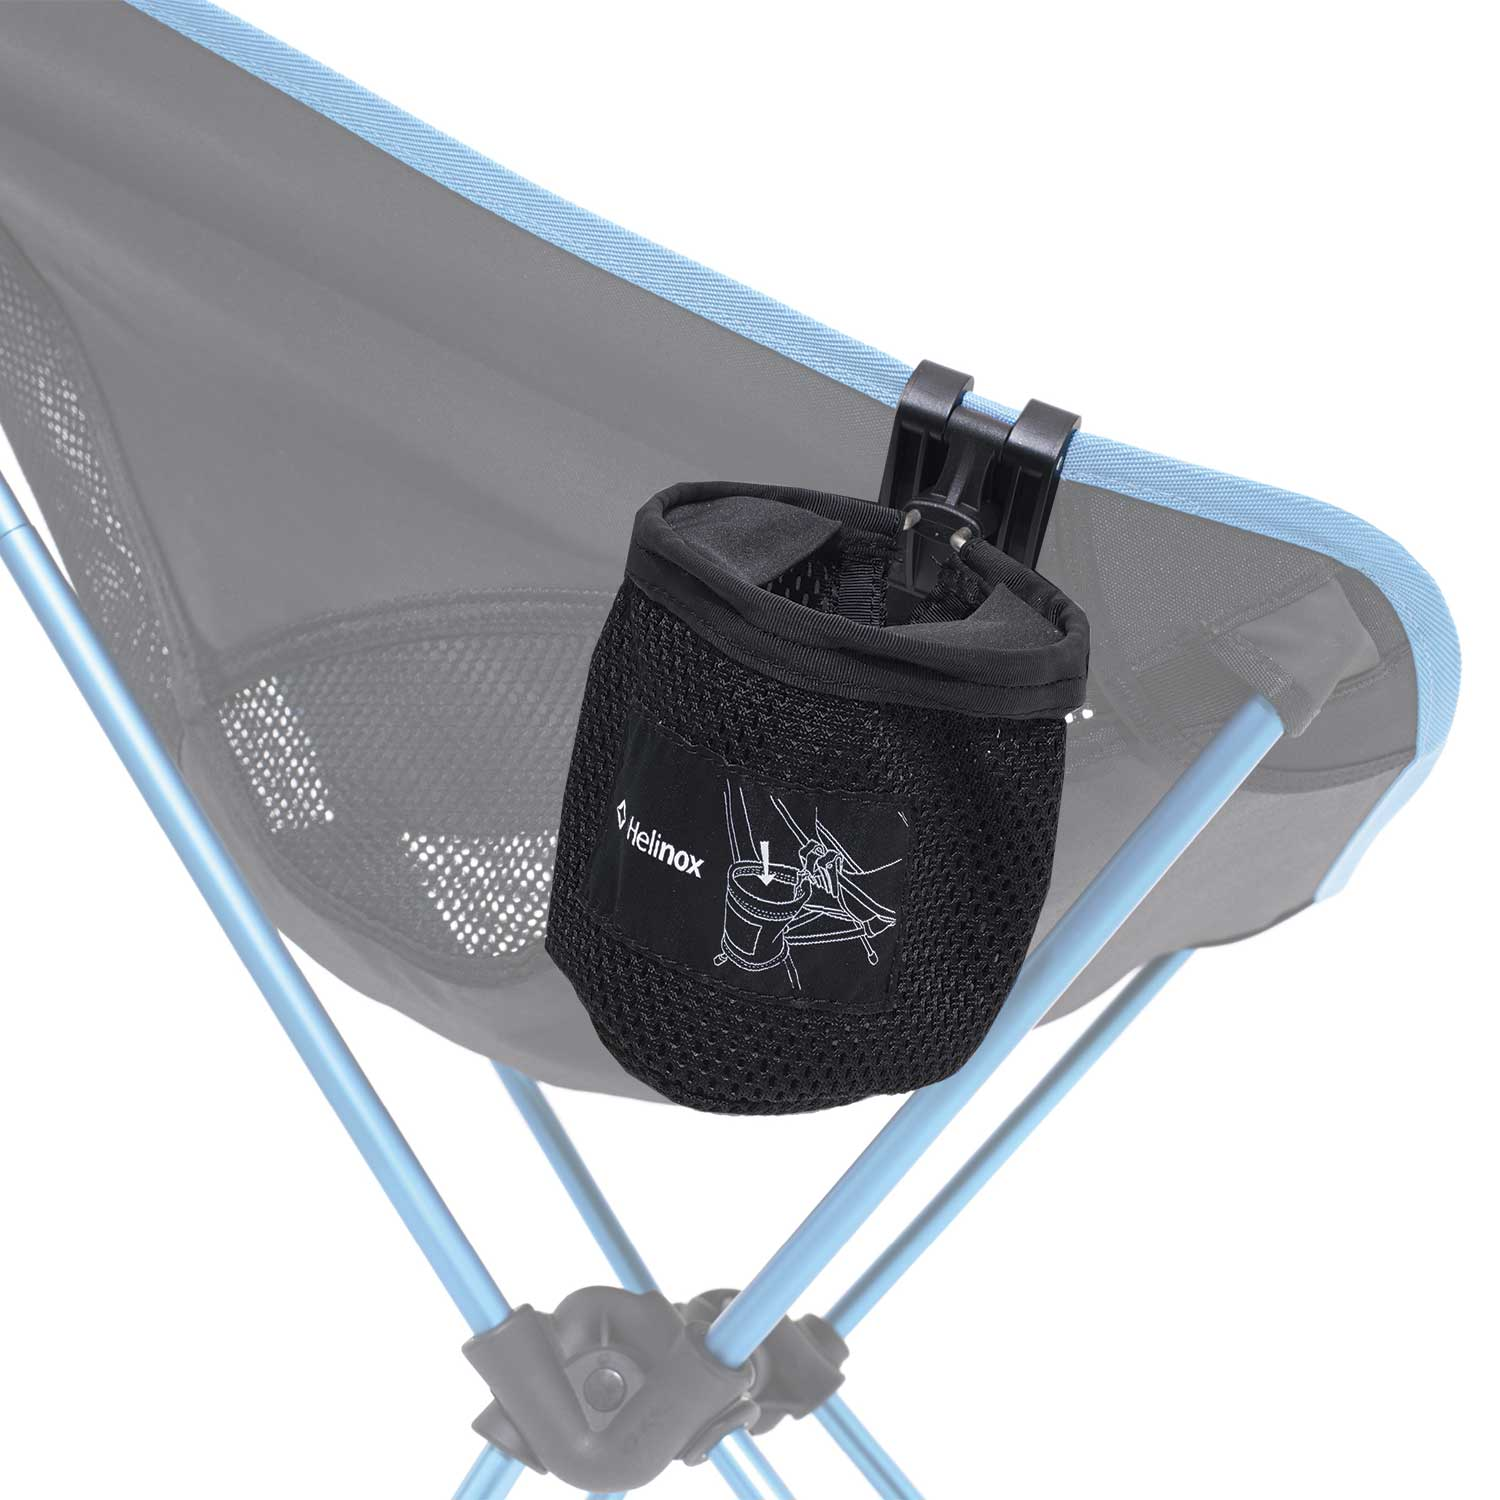 big agnes helinox chair babys first 2 cup holder by boundary waters catalog item ch16